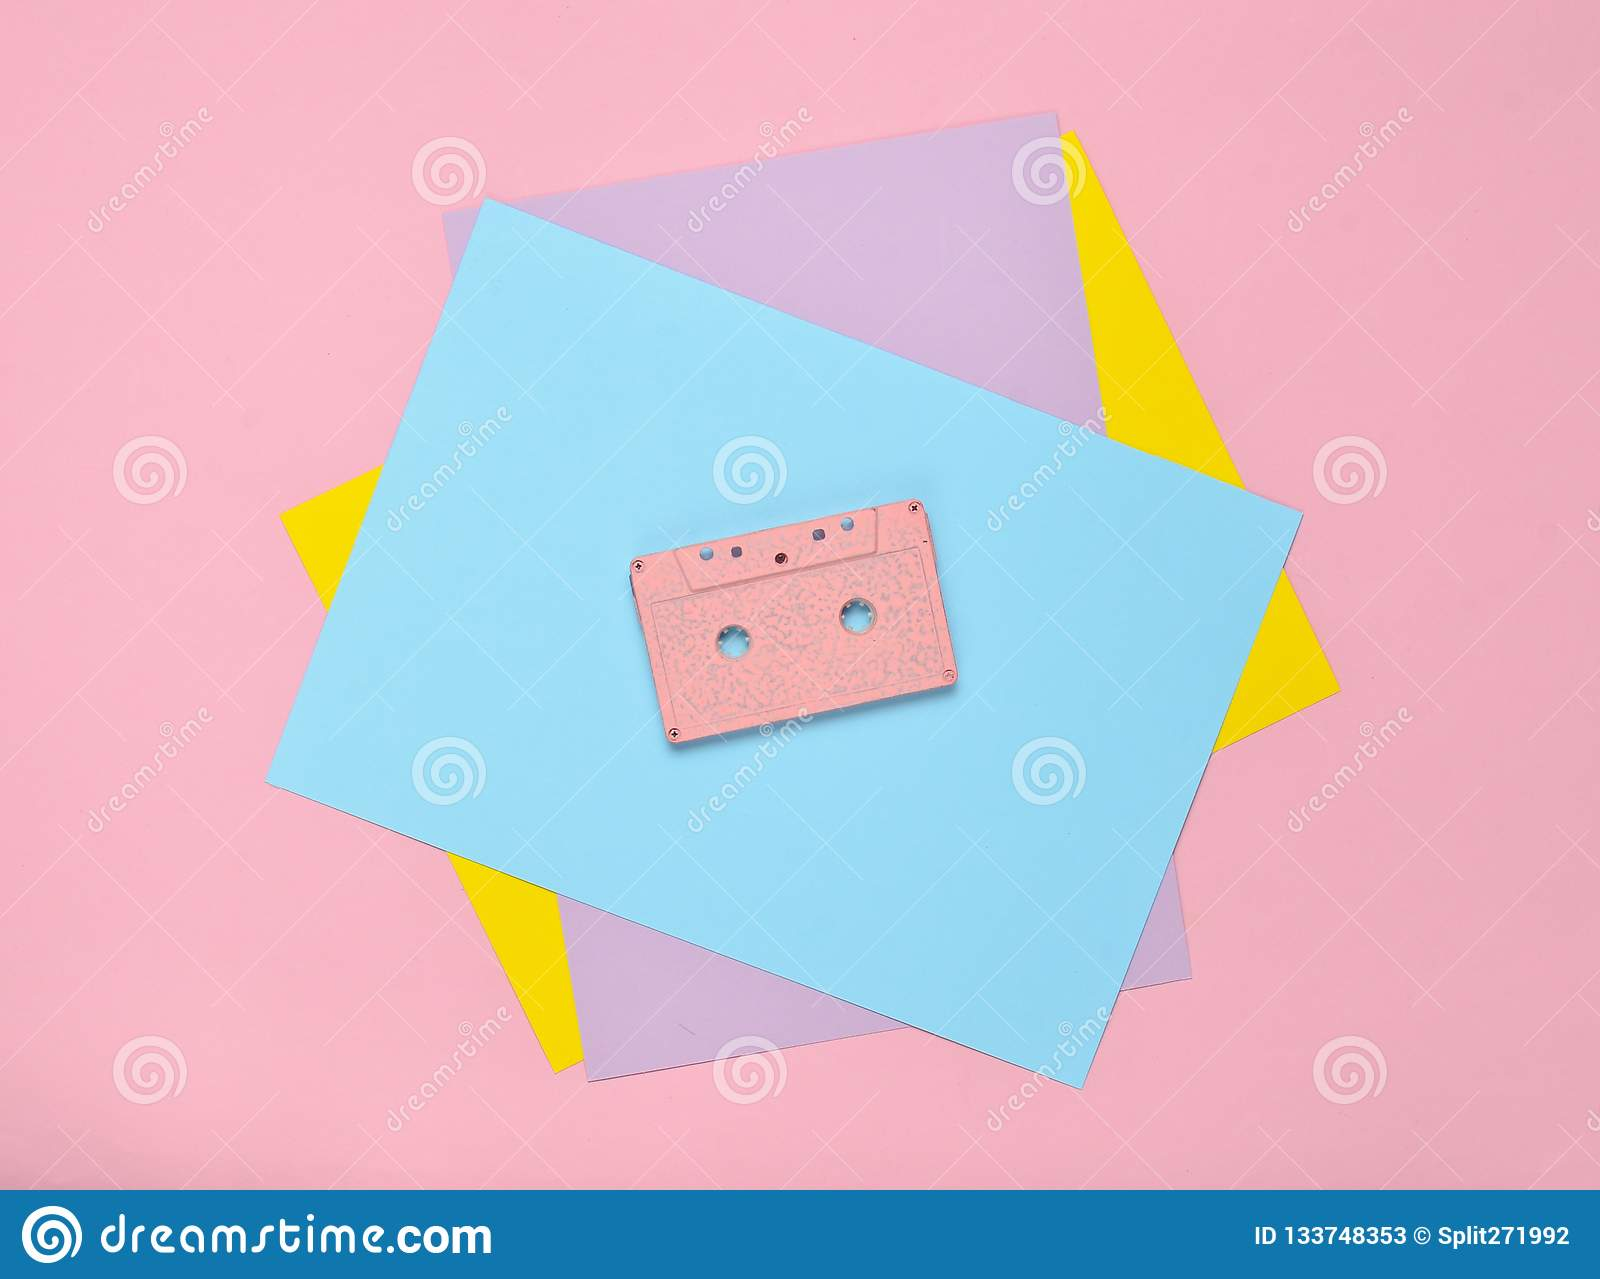 Audio Cassette On A Pastel-colored Paper Background  Retro